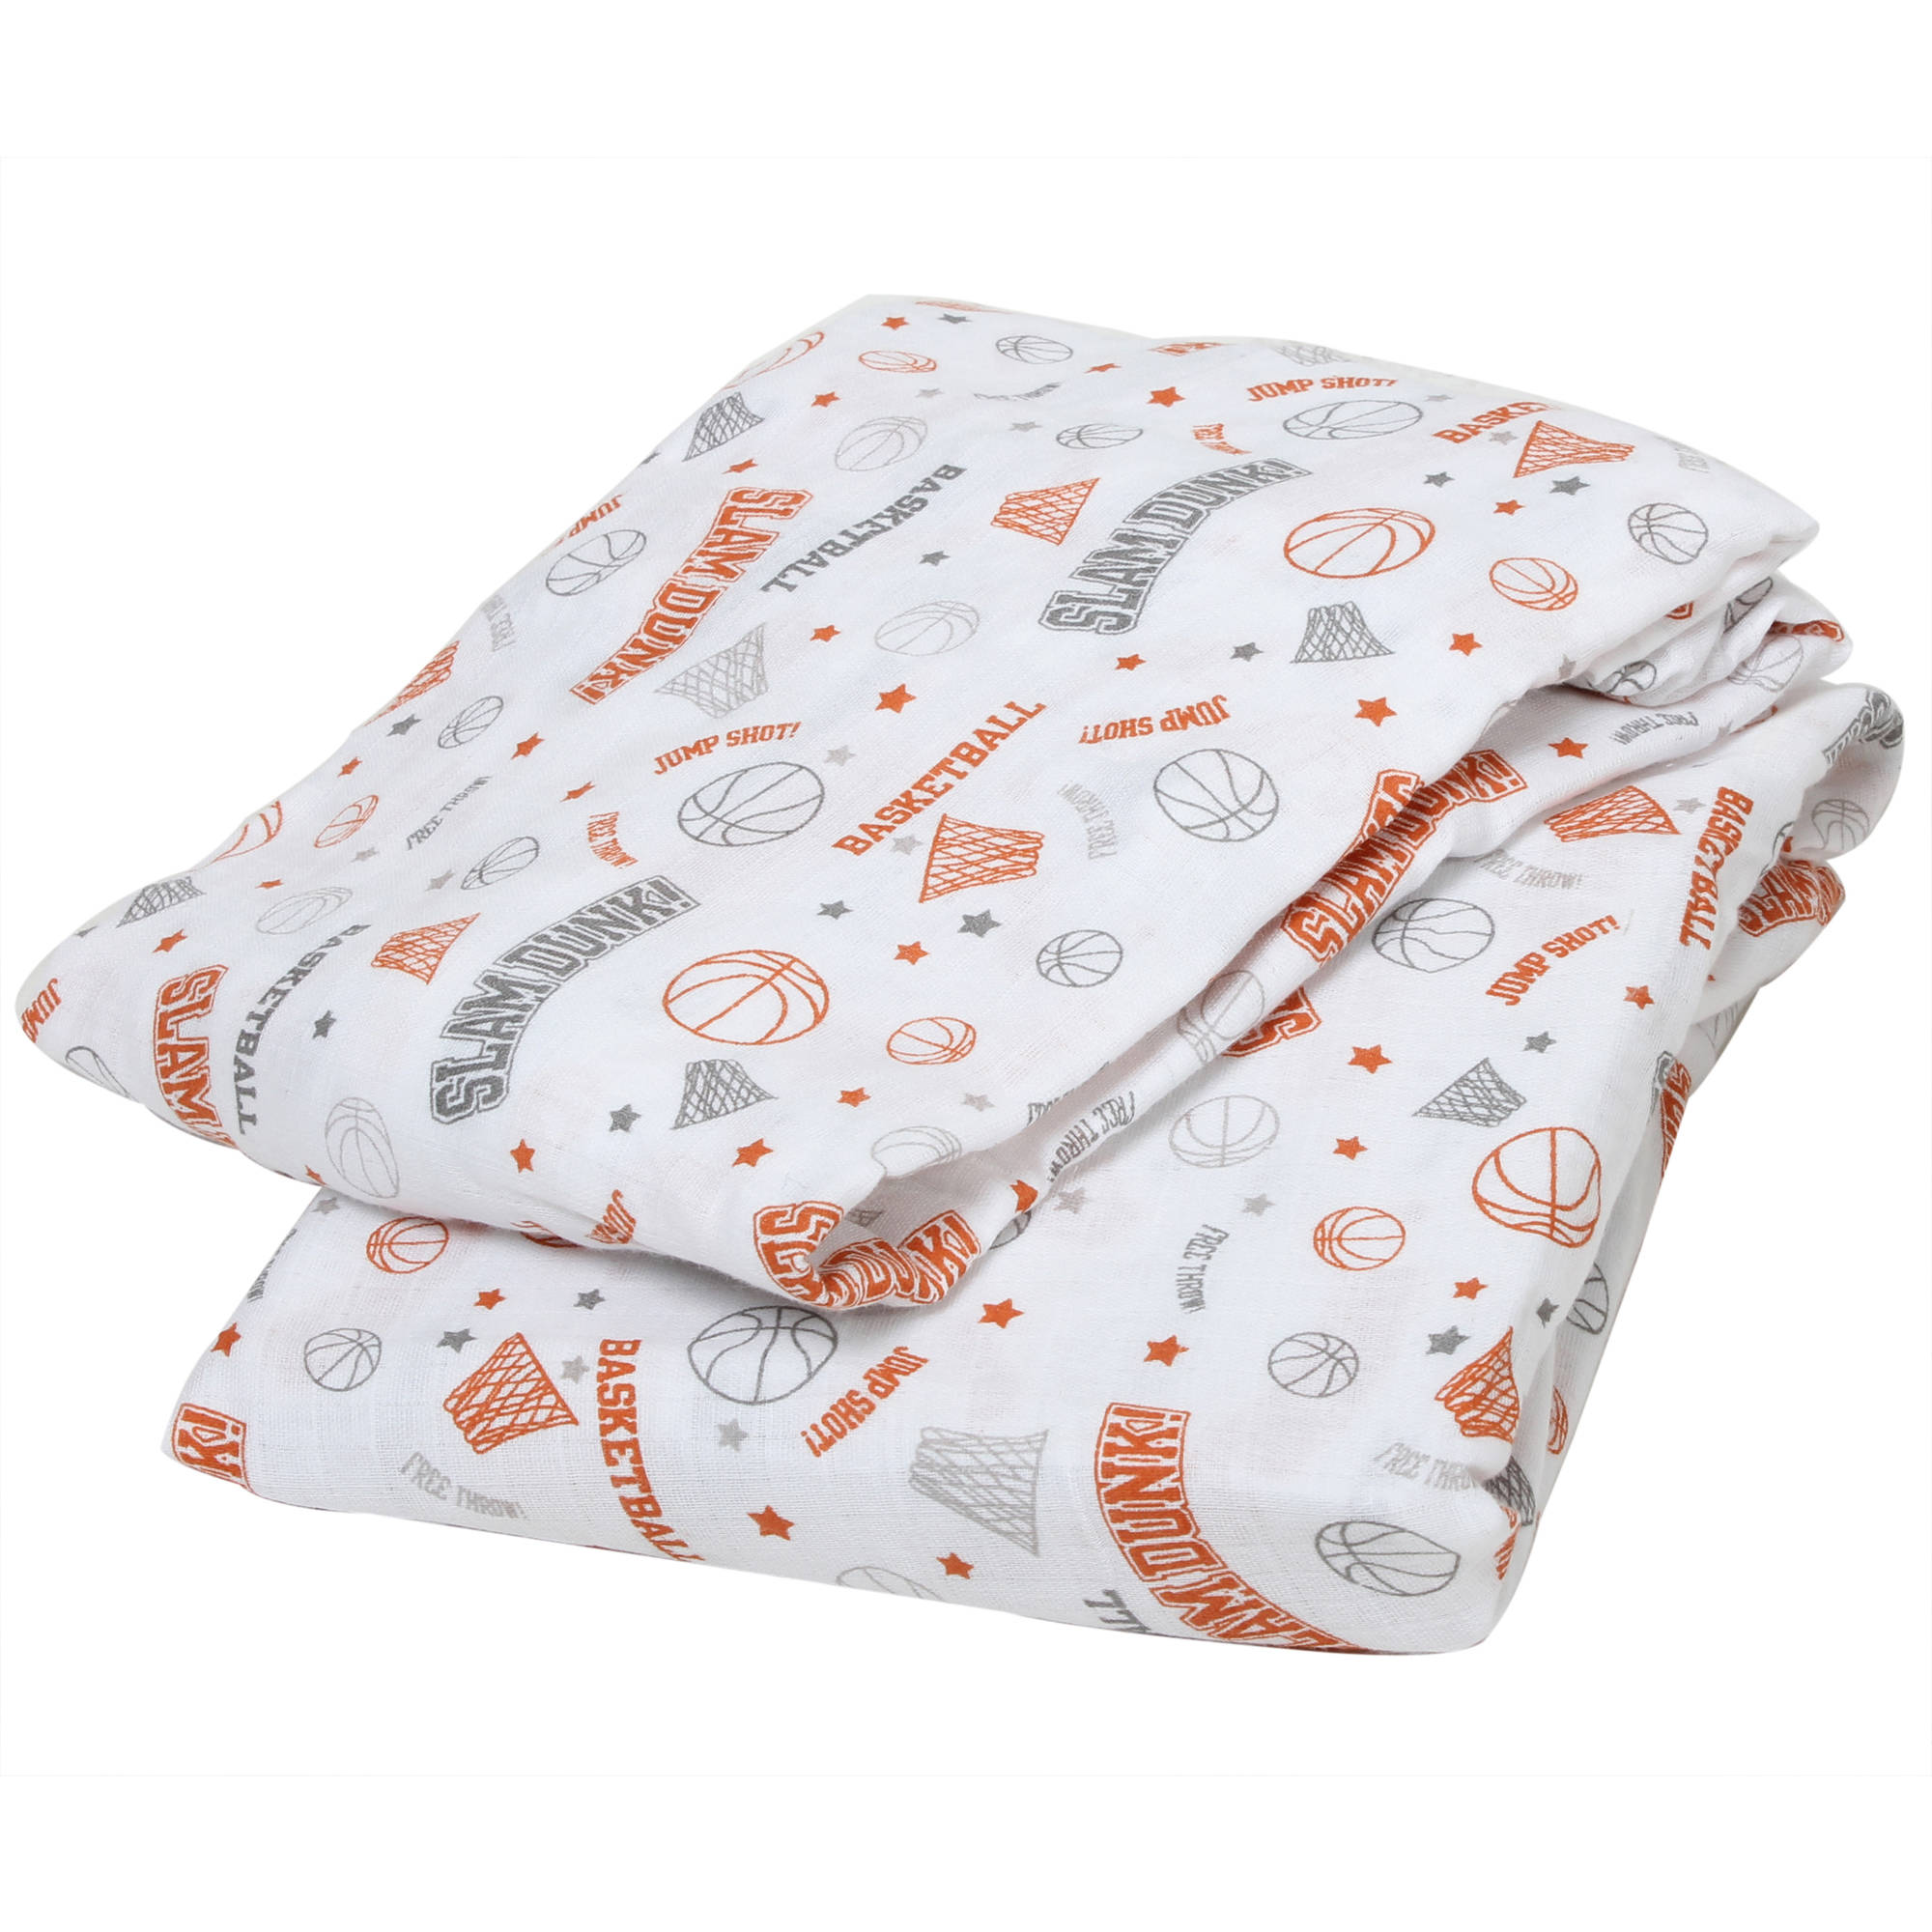 Bacati - Sports Crib/Toddler Bed Fitted Sheets 100% Cotton Muslin 2 Pack, Basketball Orange/Grey